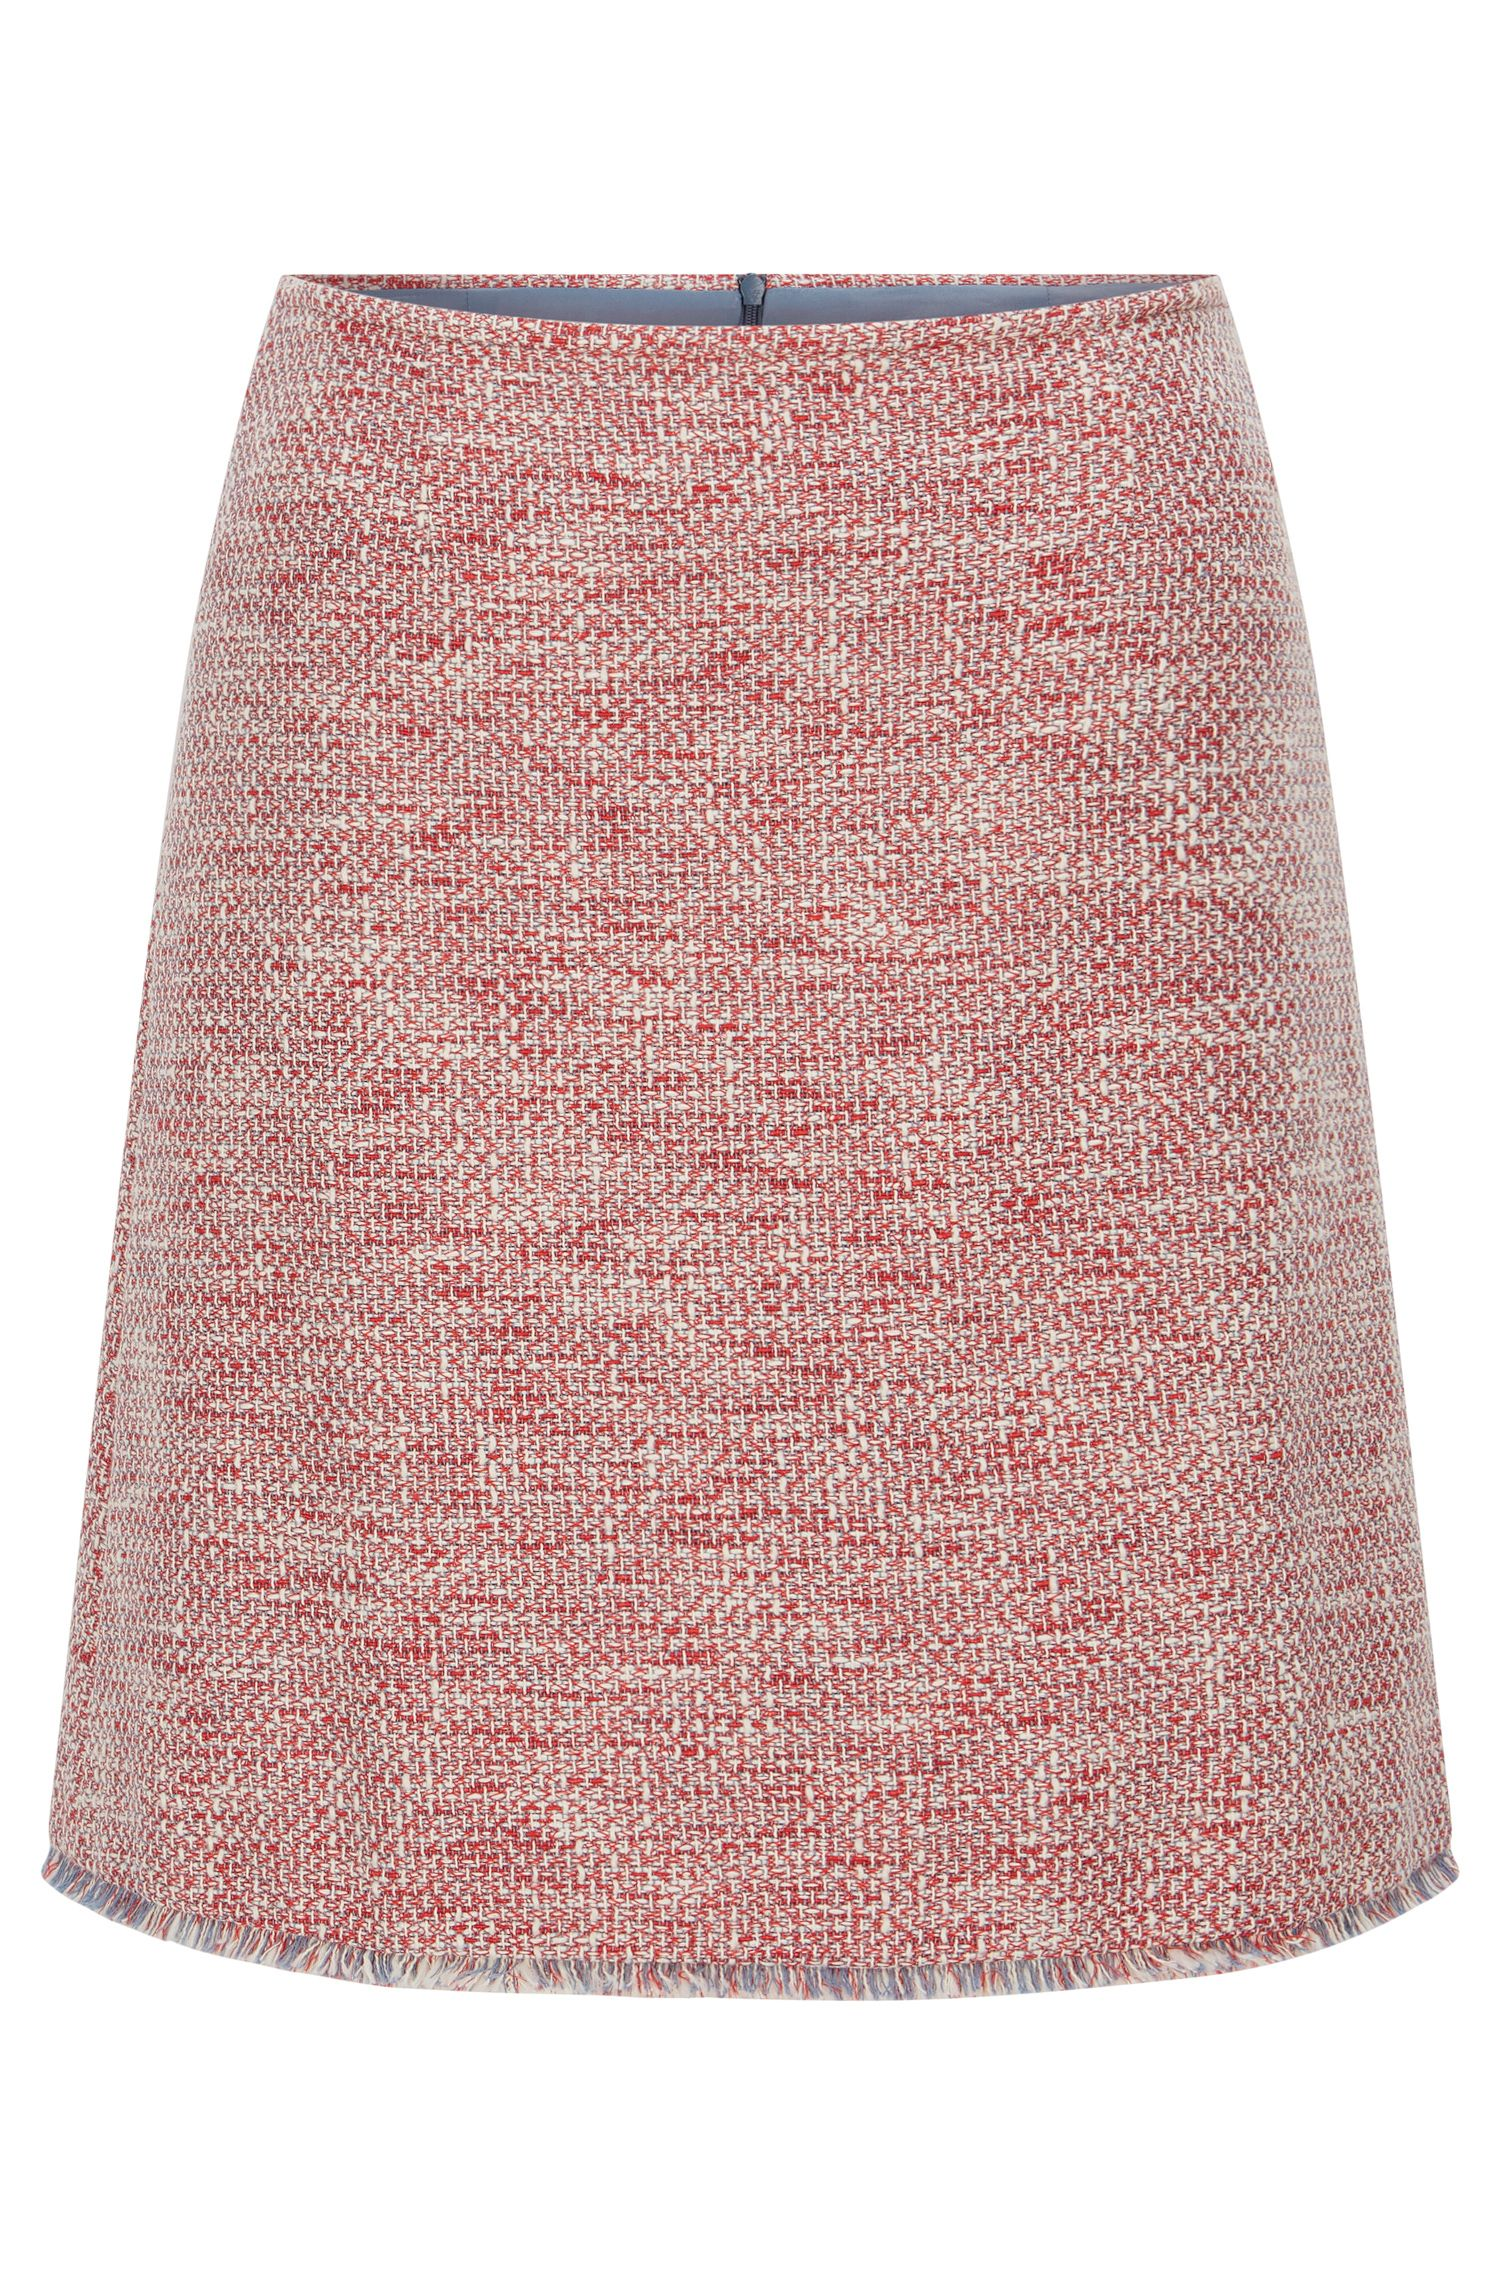 Regular-fit skirt in cotton-blend tweed